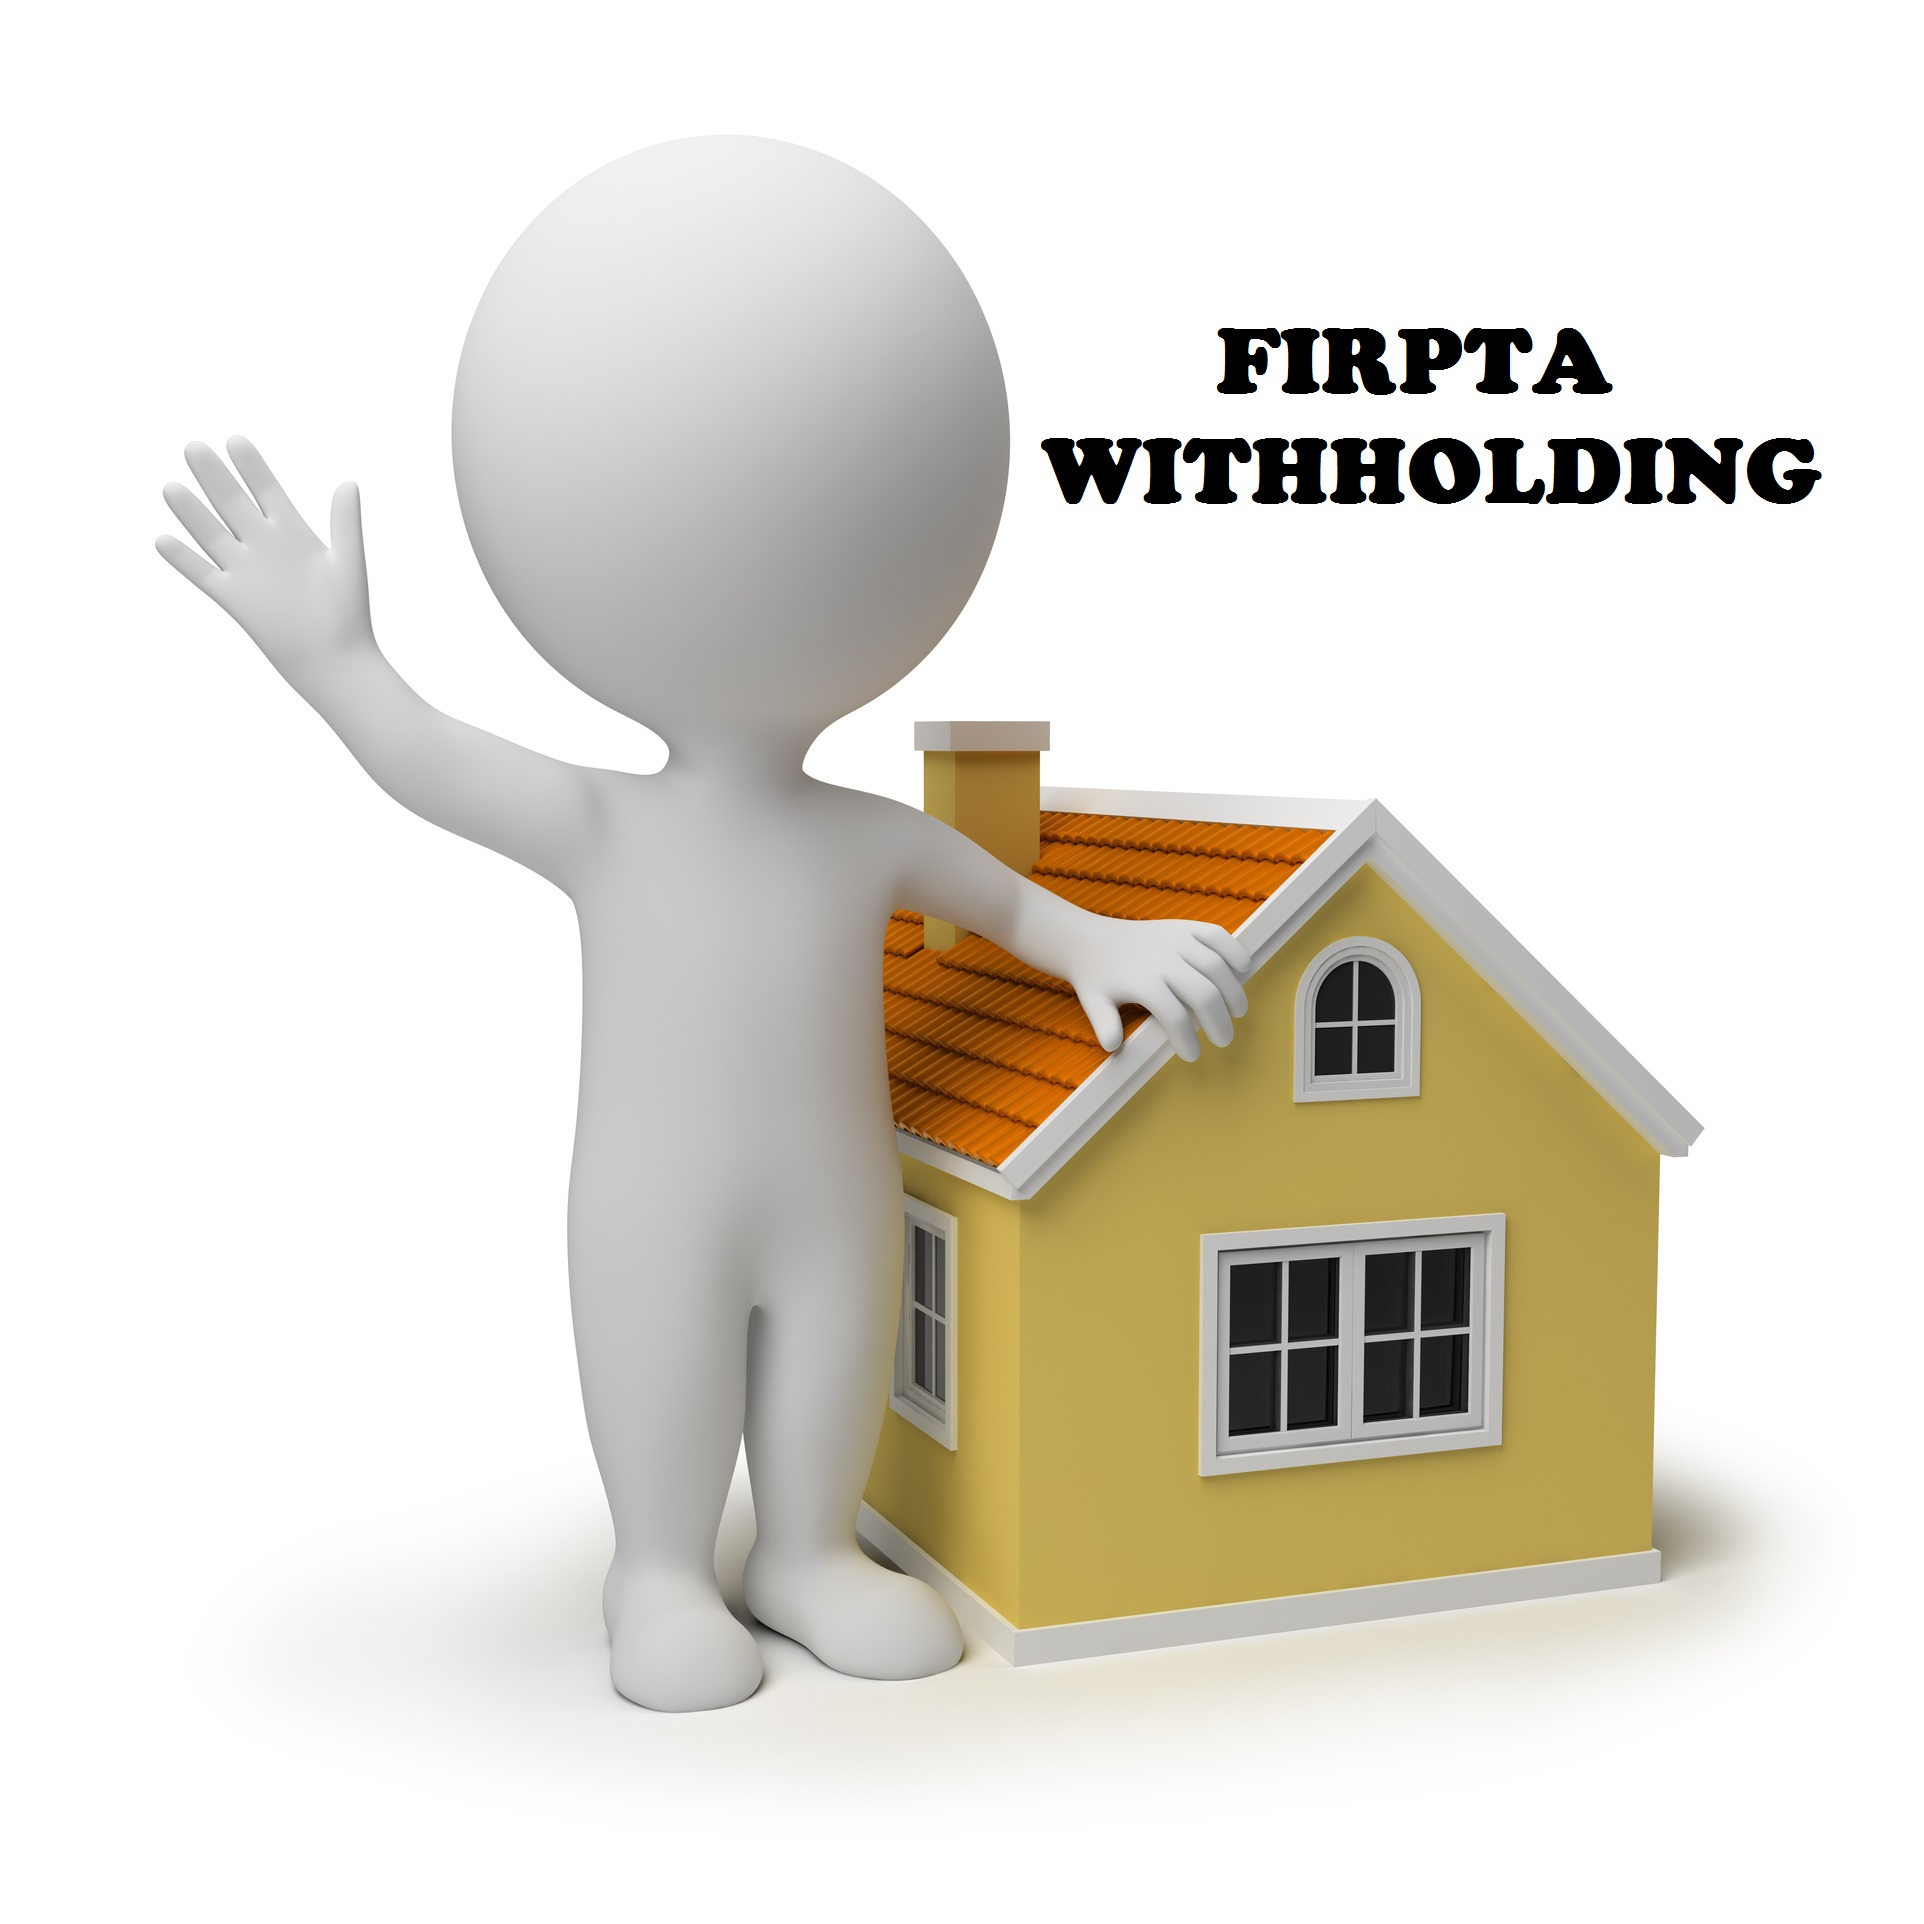 FIRPTA Withholding